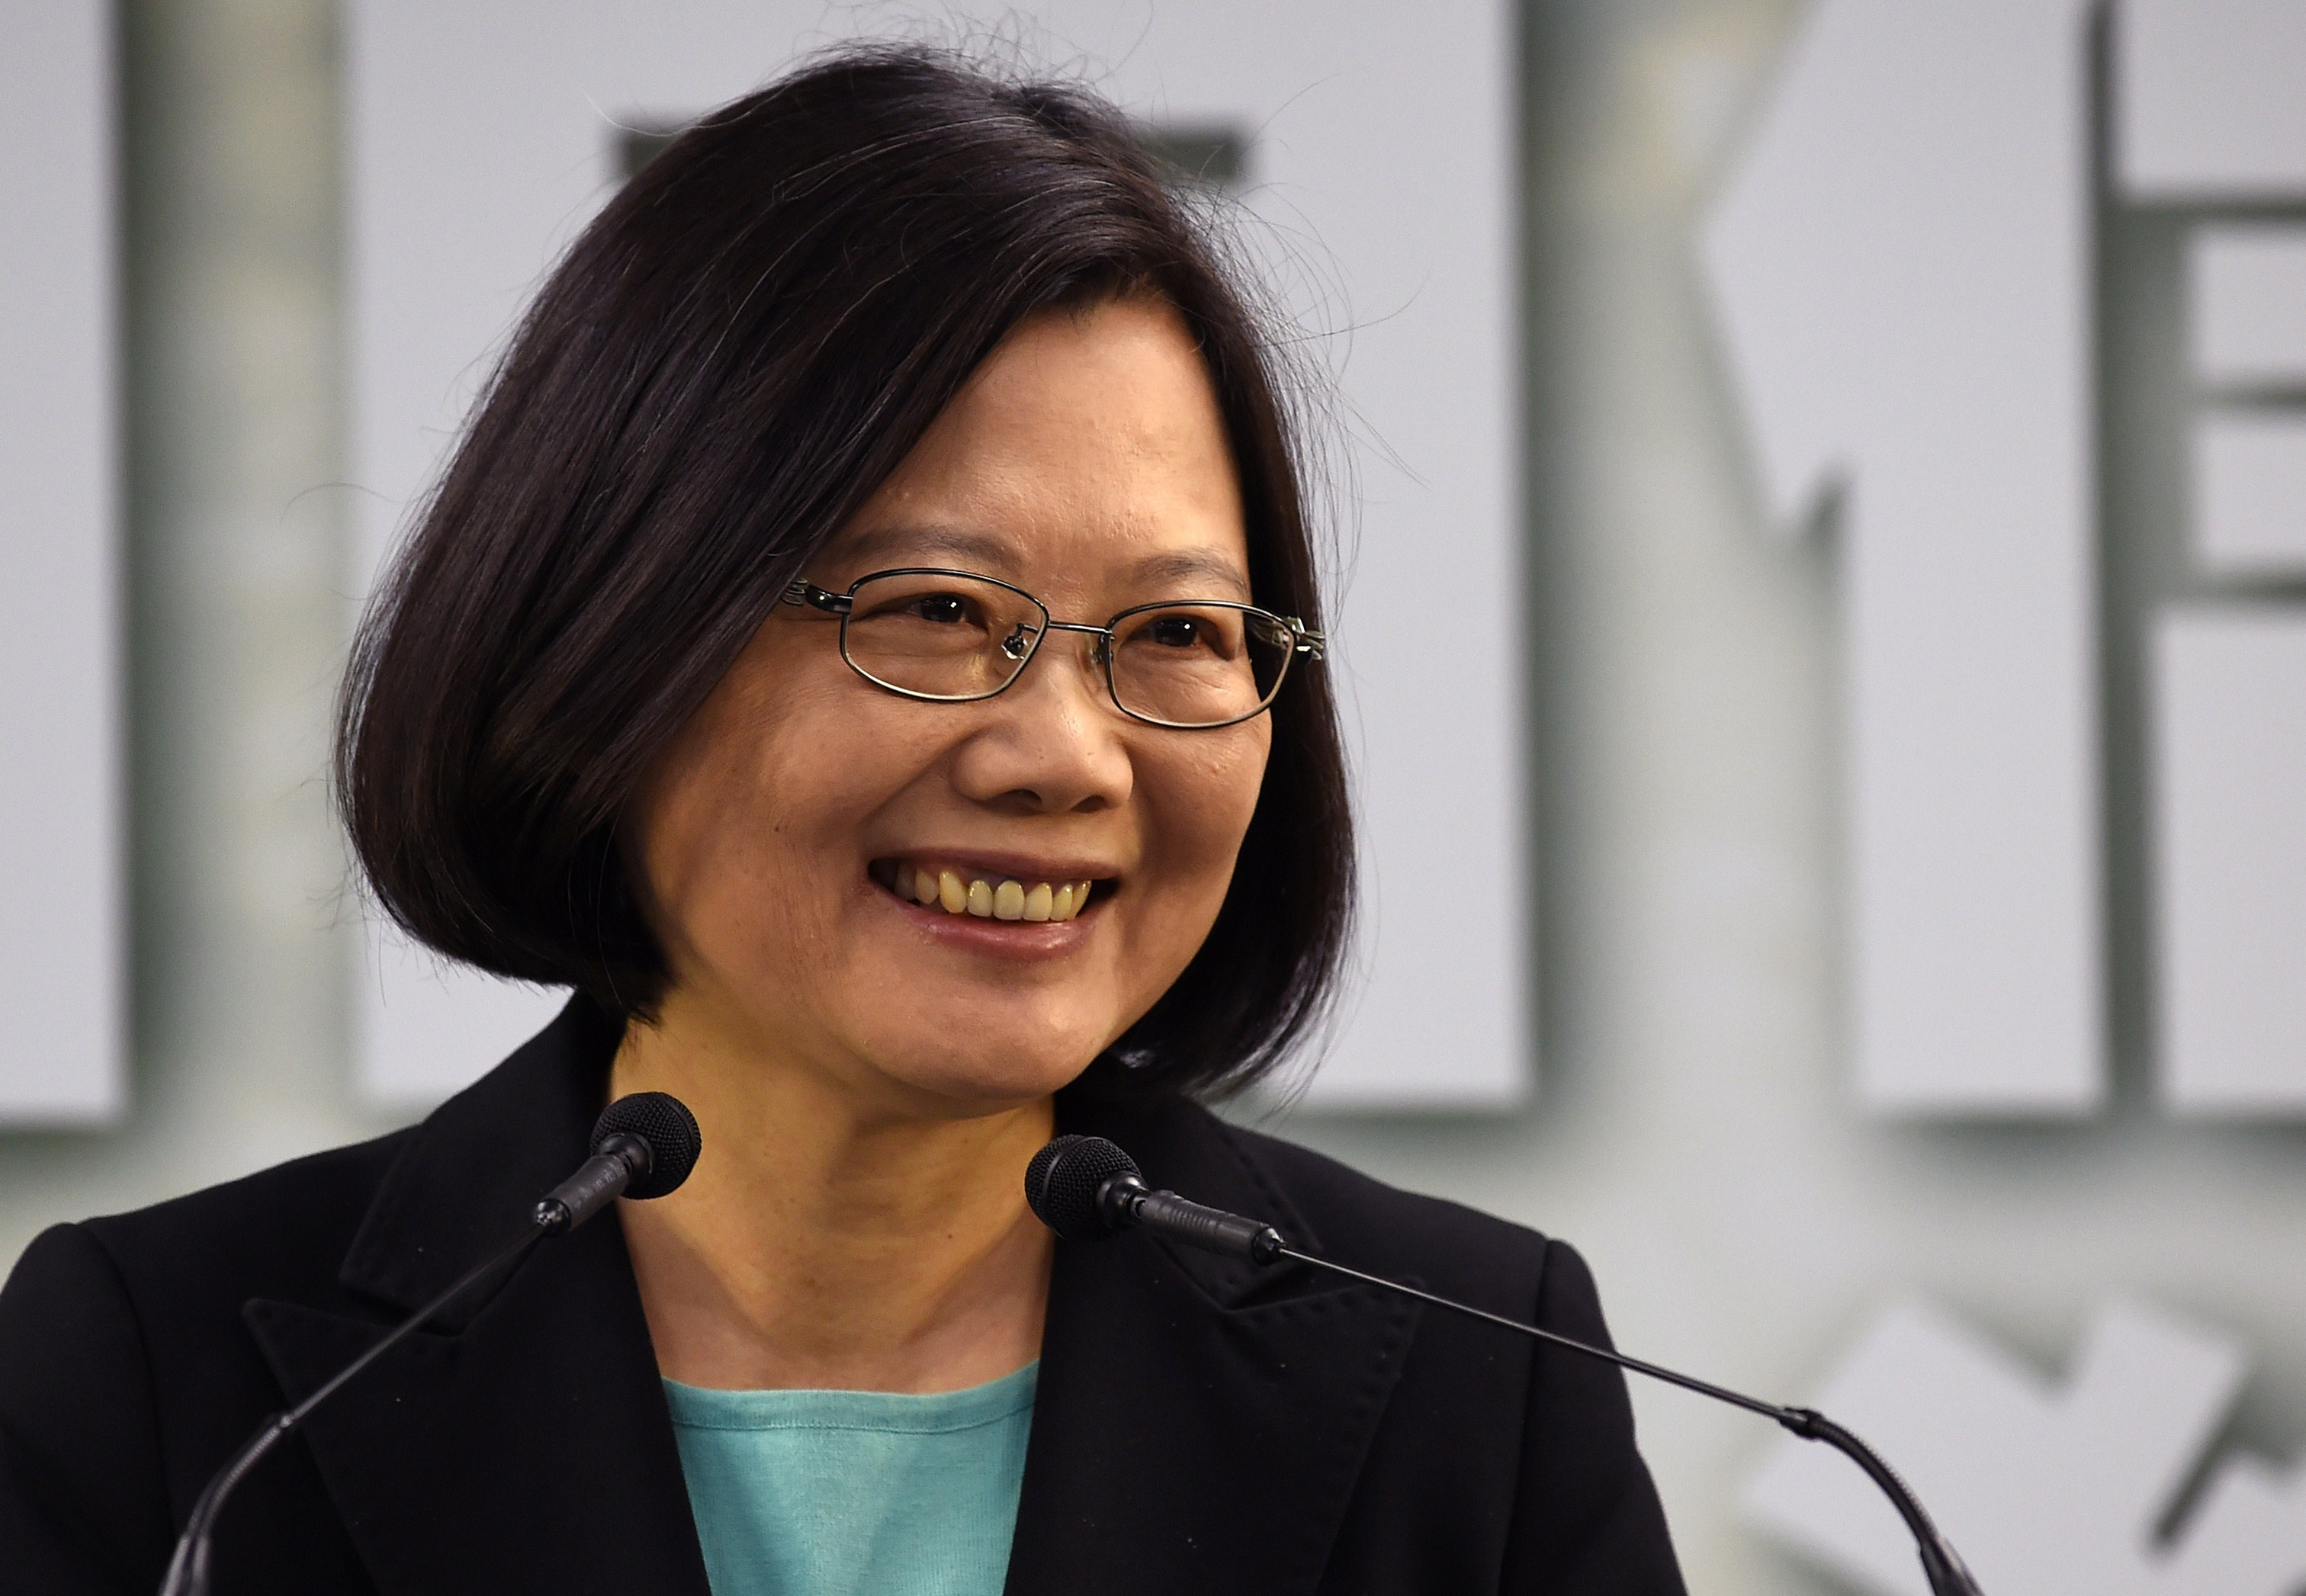 Tsai Ing-wen, chairwoman of Taiwan's main opposition Democratic Progressive Party (DPP), smiles during a press conference in Taipei on April 15, 2015. The DPP announced on April 15 that Tsai will run for president in 2016 in the hope of becoming the island's first ever woman leader.